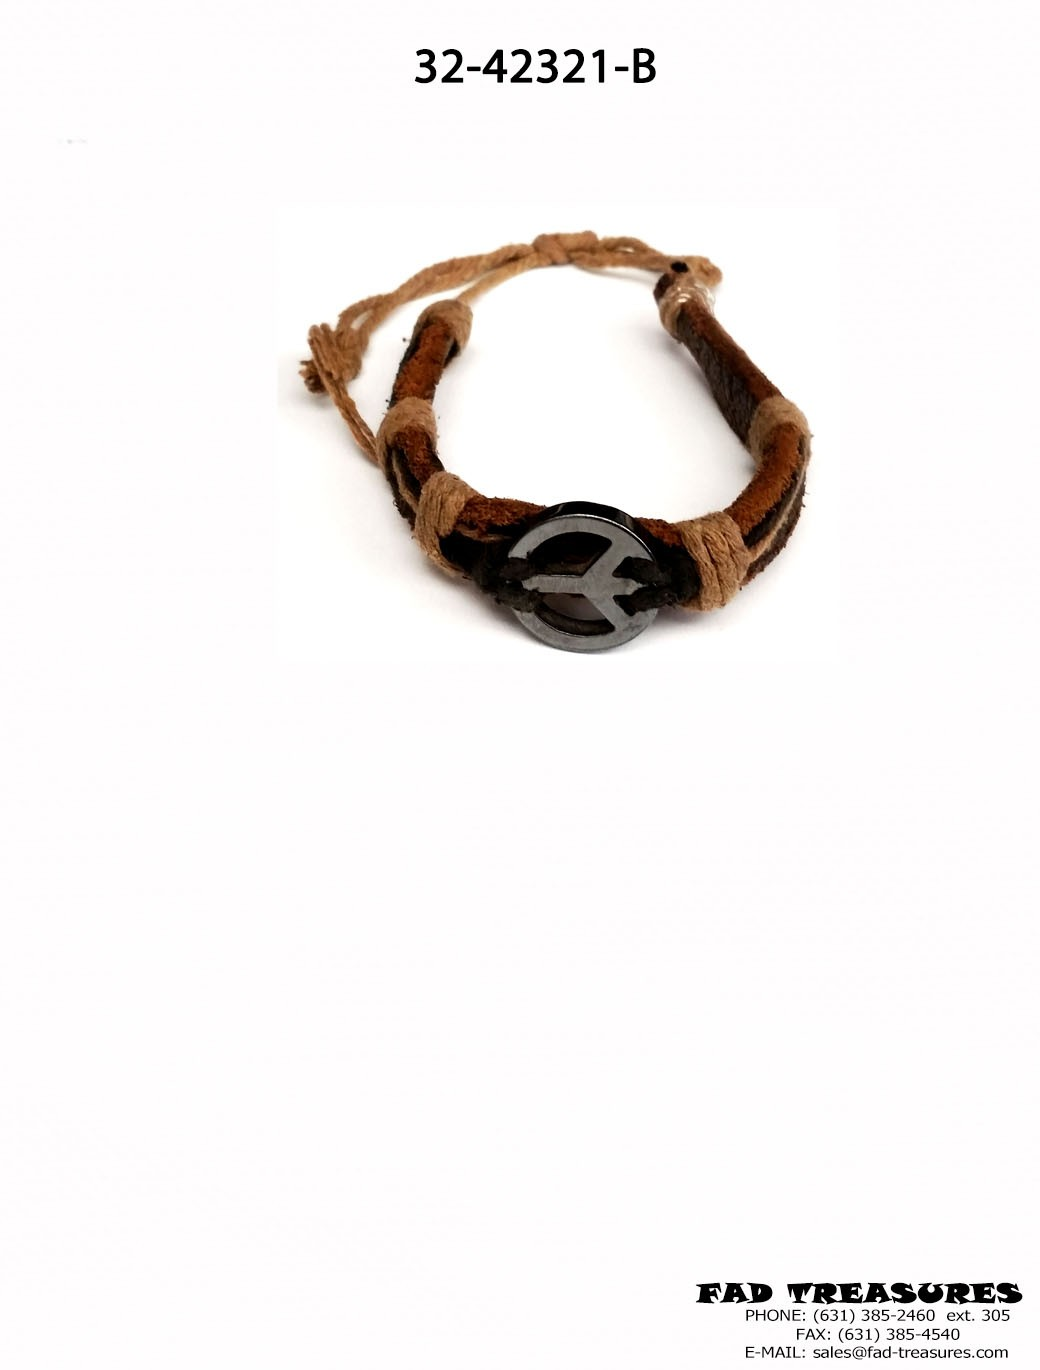 Leather Rope With Hematite Peace Charm Bracelet